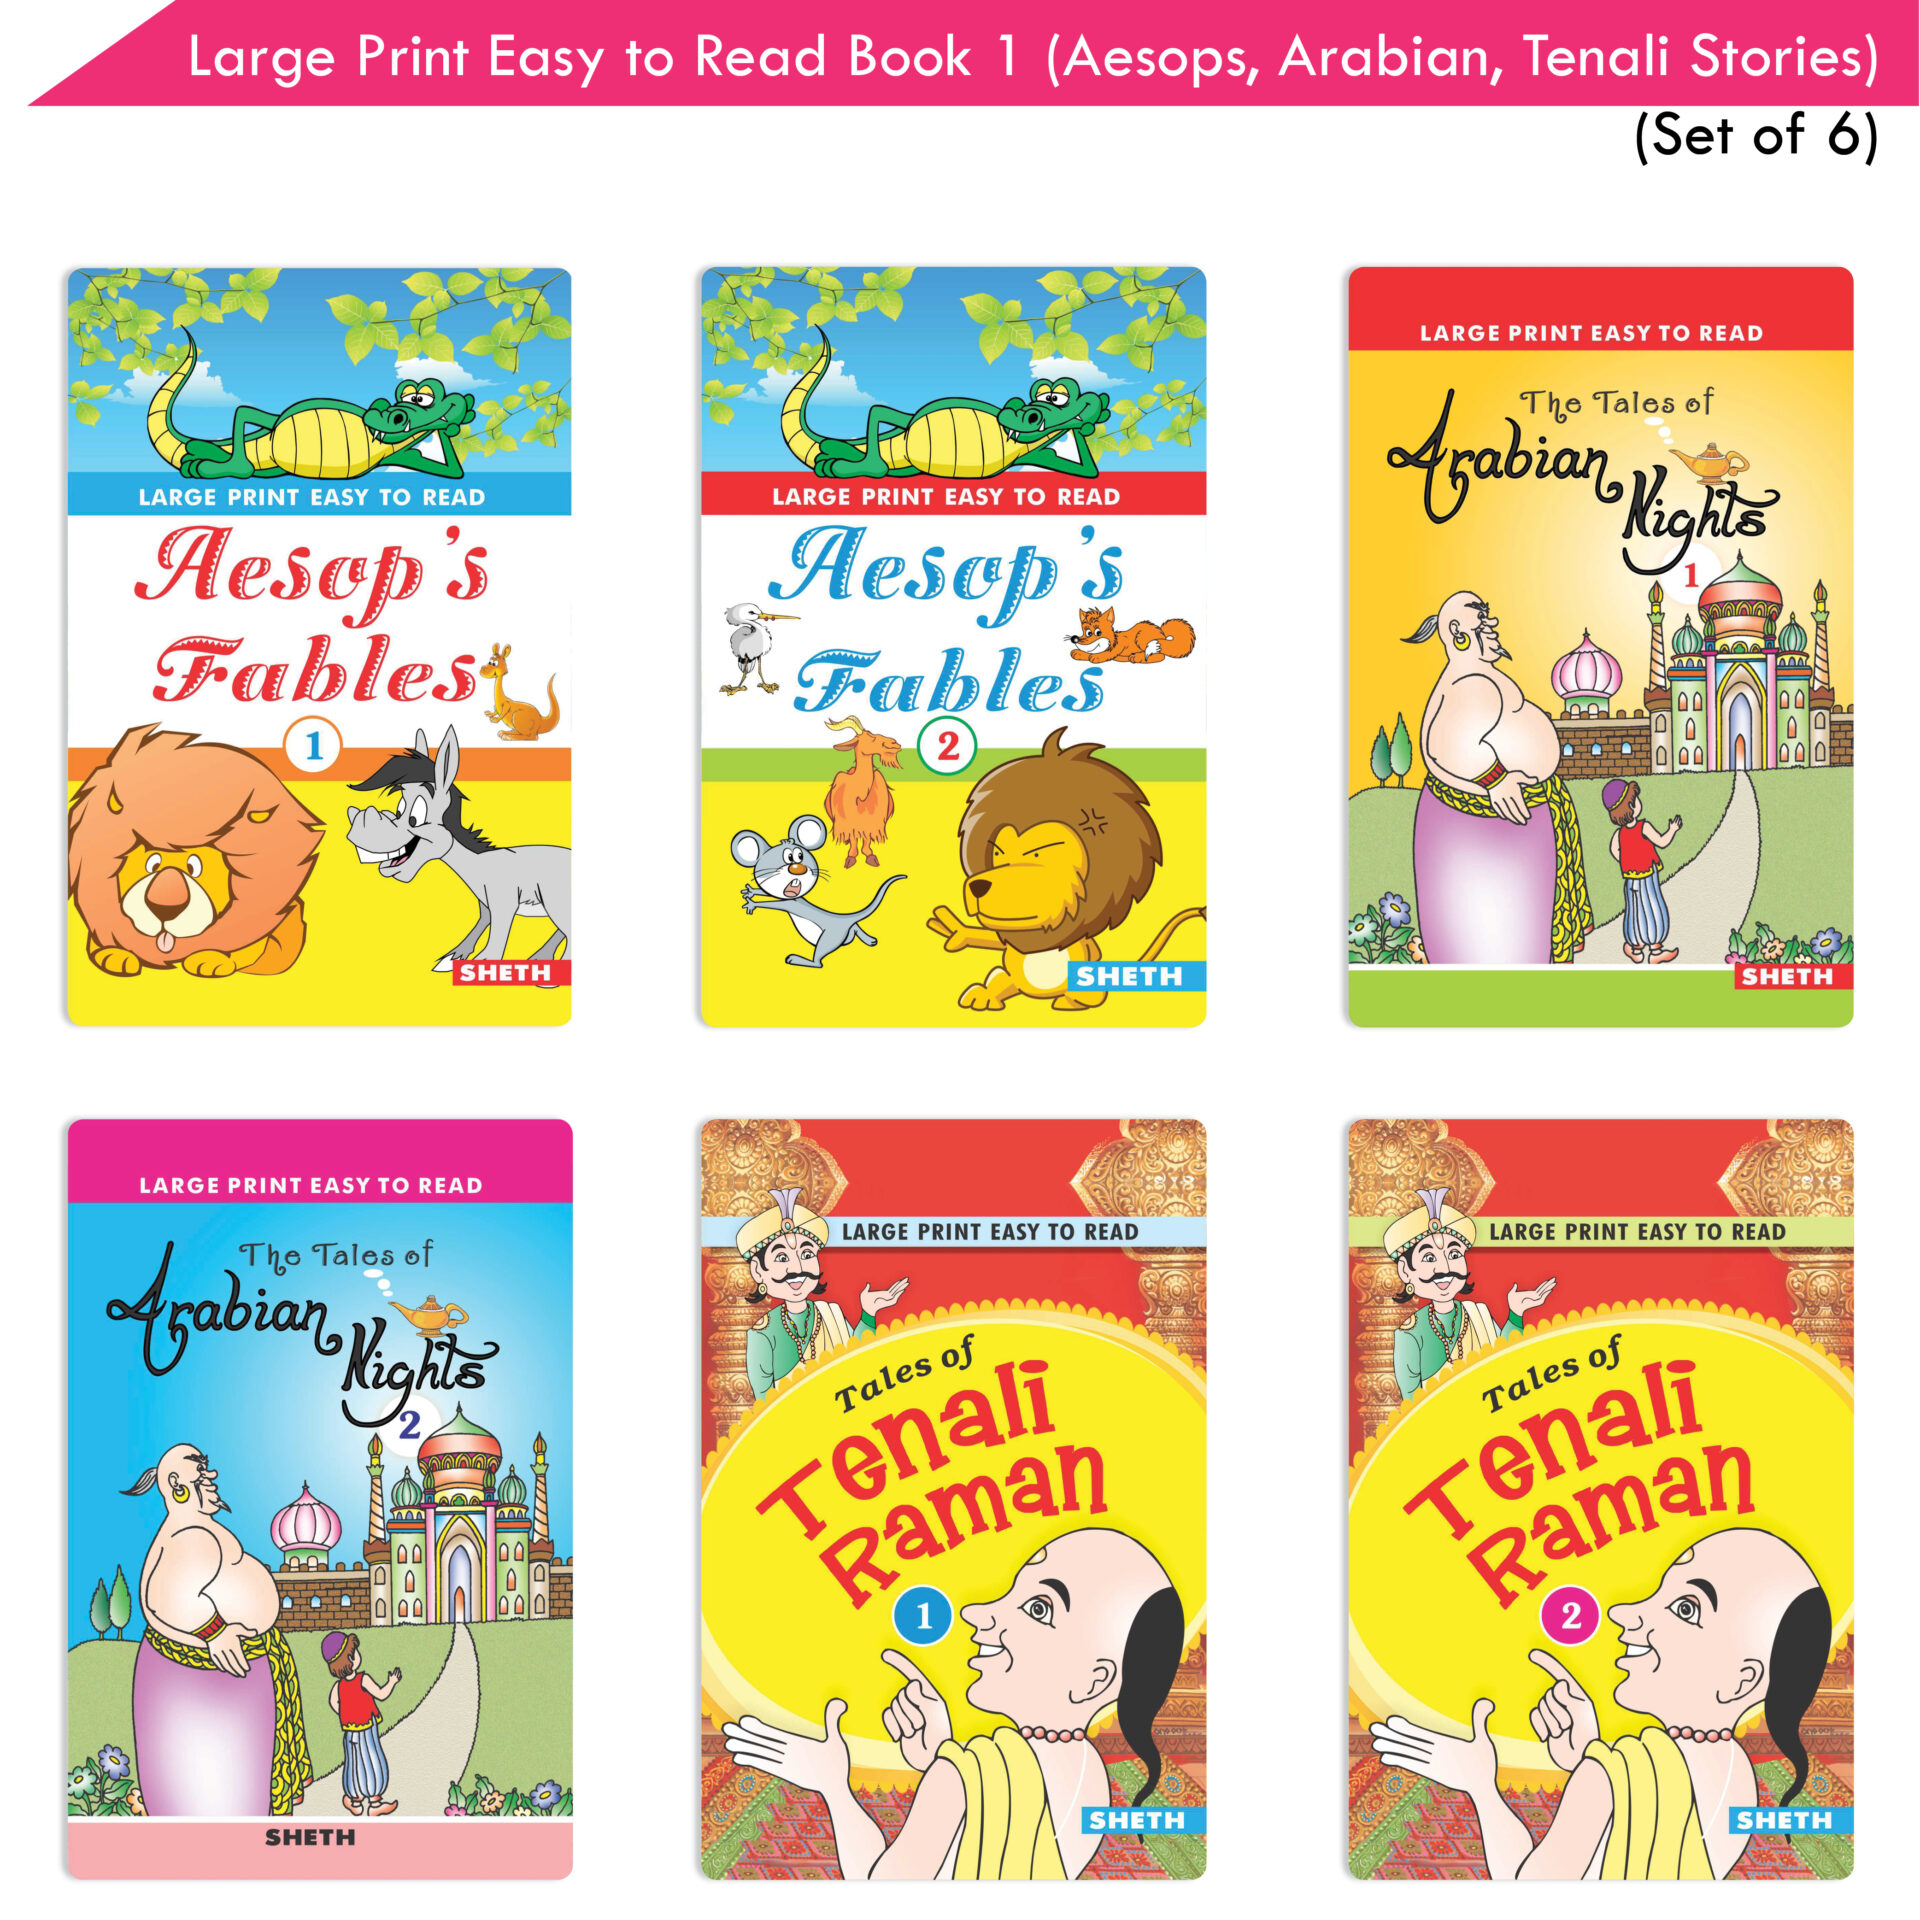 Large Print Easy to Read Book 1 Set of 6 1